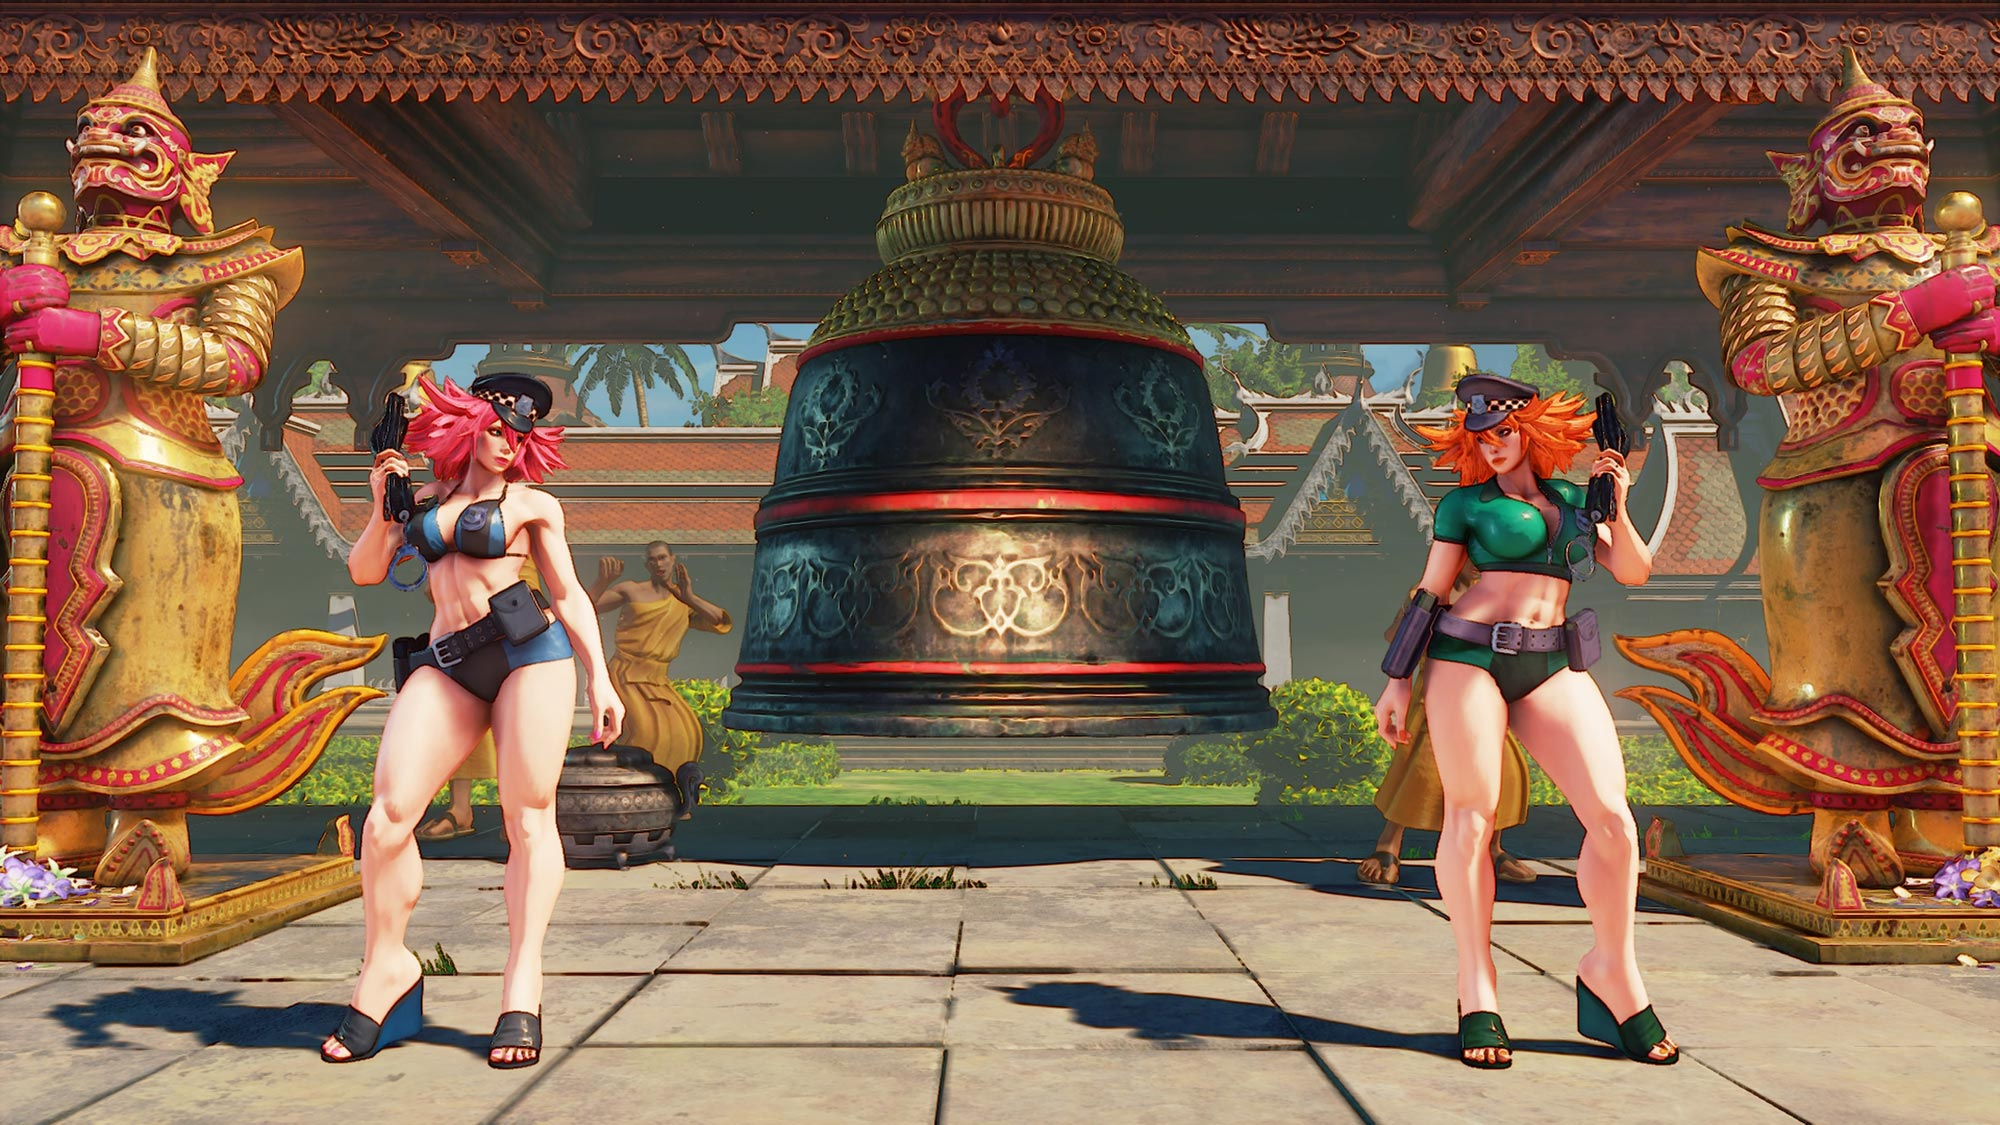 Poison's costume colors in Street Fighter 5 18 out of 22 image gallery